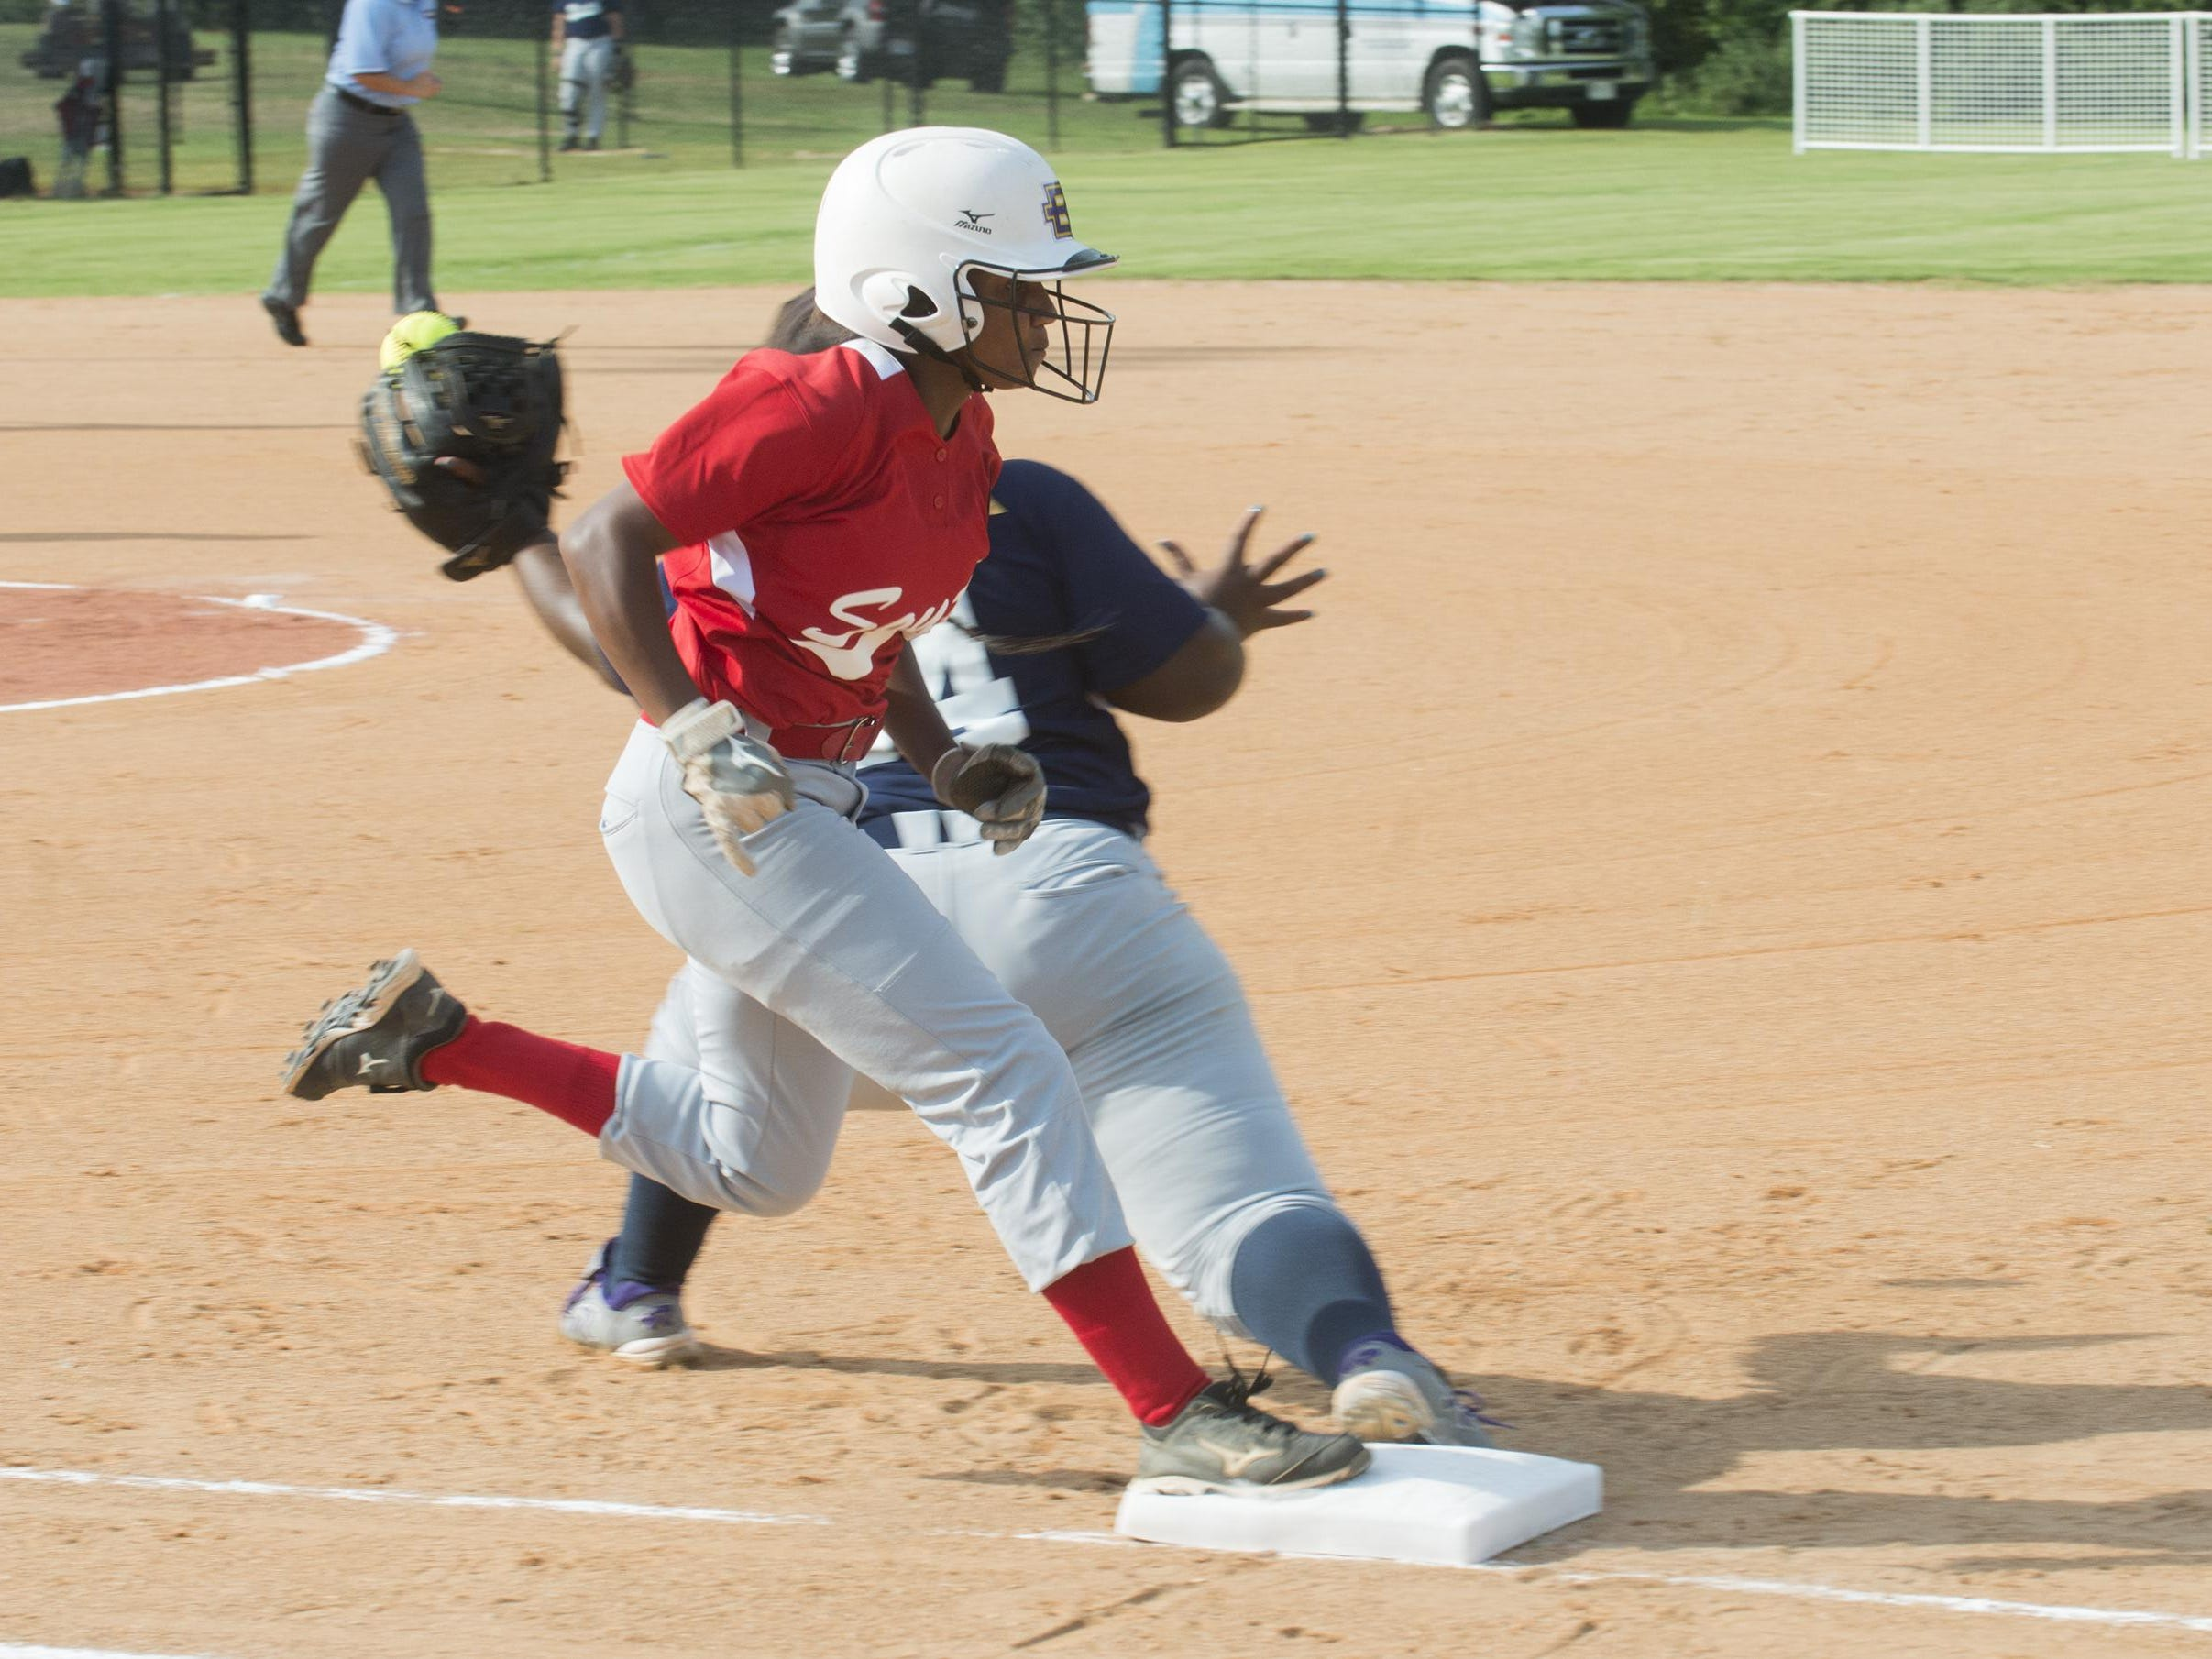 Elmore County player Elissa Brown of the South All-Stars team beats a throw to be safe at first. The South All-Stars team took a 4-3 win in game 1 over the North team on Tuesday, July 21, 2015.